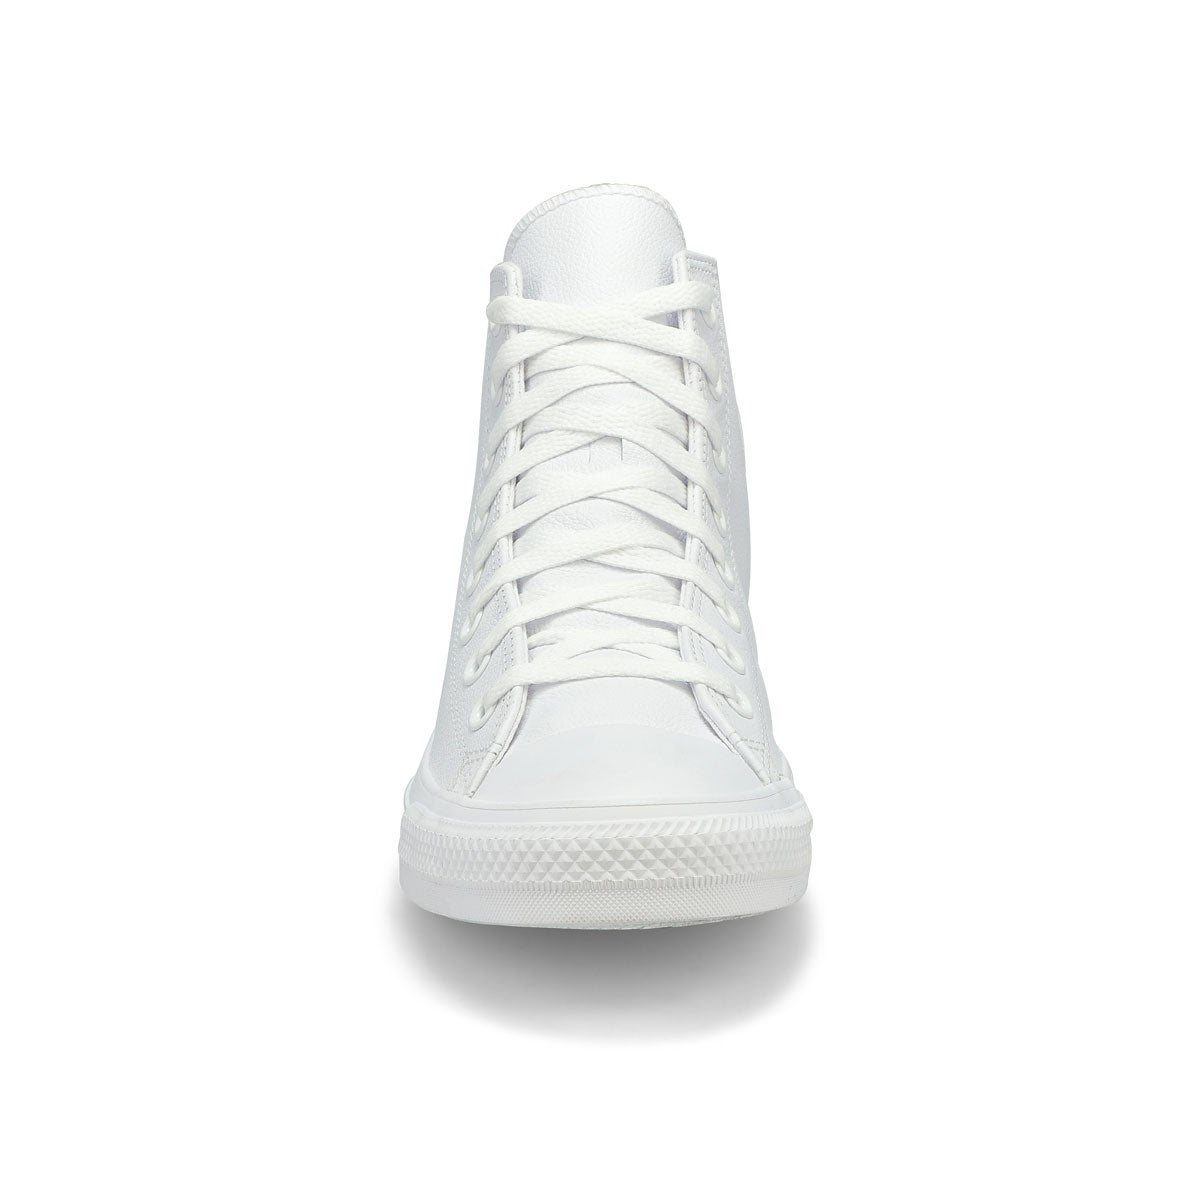 Mns CTAS Leather Hi wt/wt  snkr